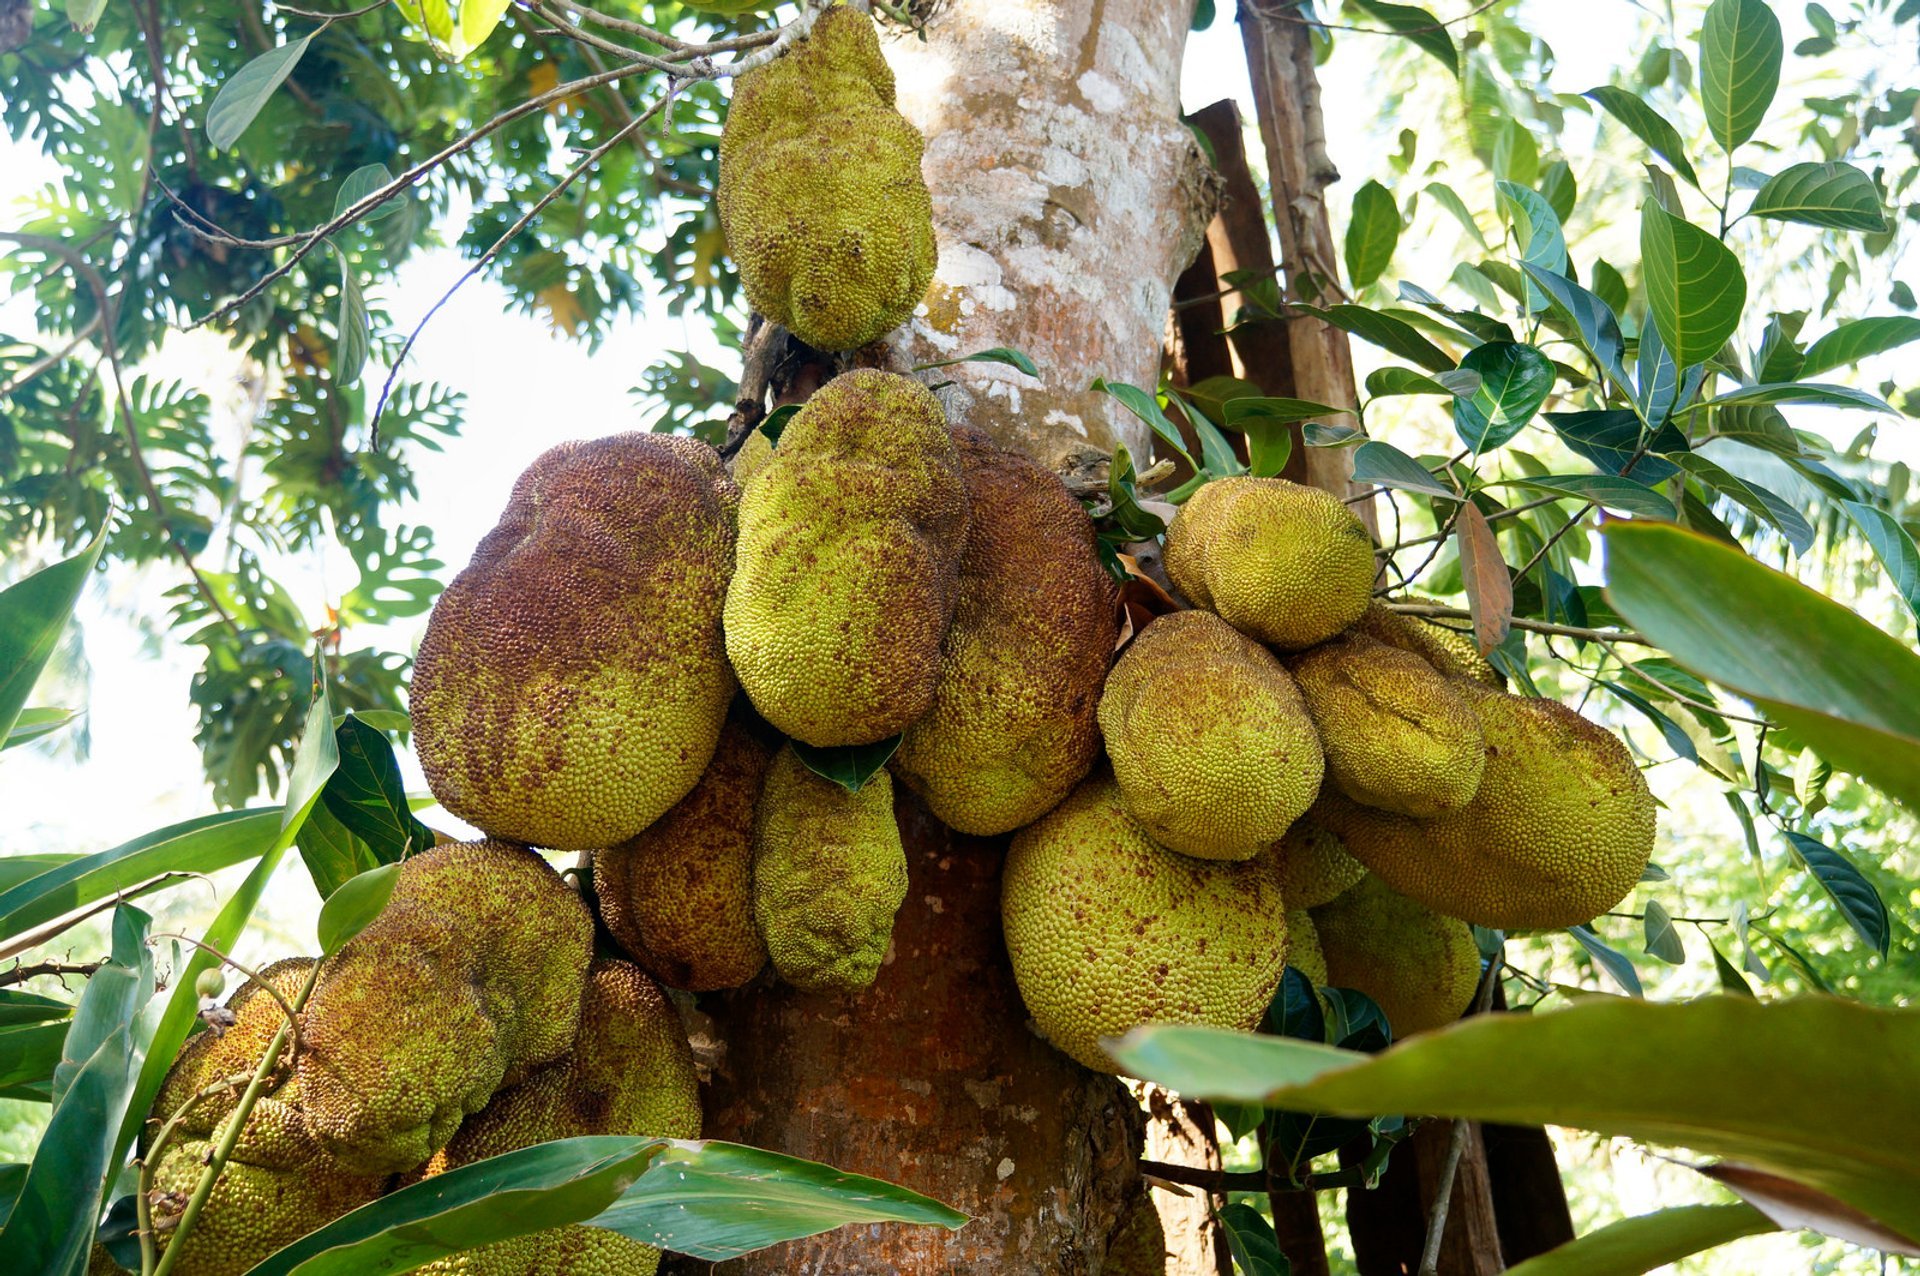 Breadfruit and Jackfruit in Zanzibar 2020 - Best Time